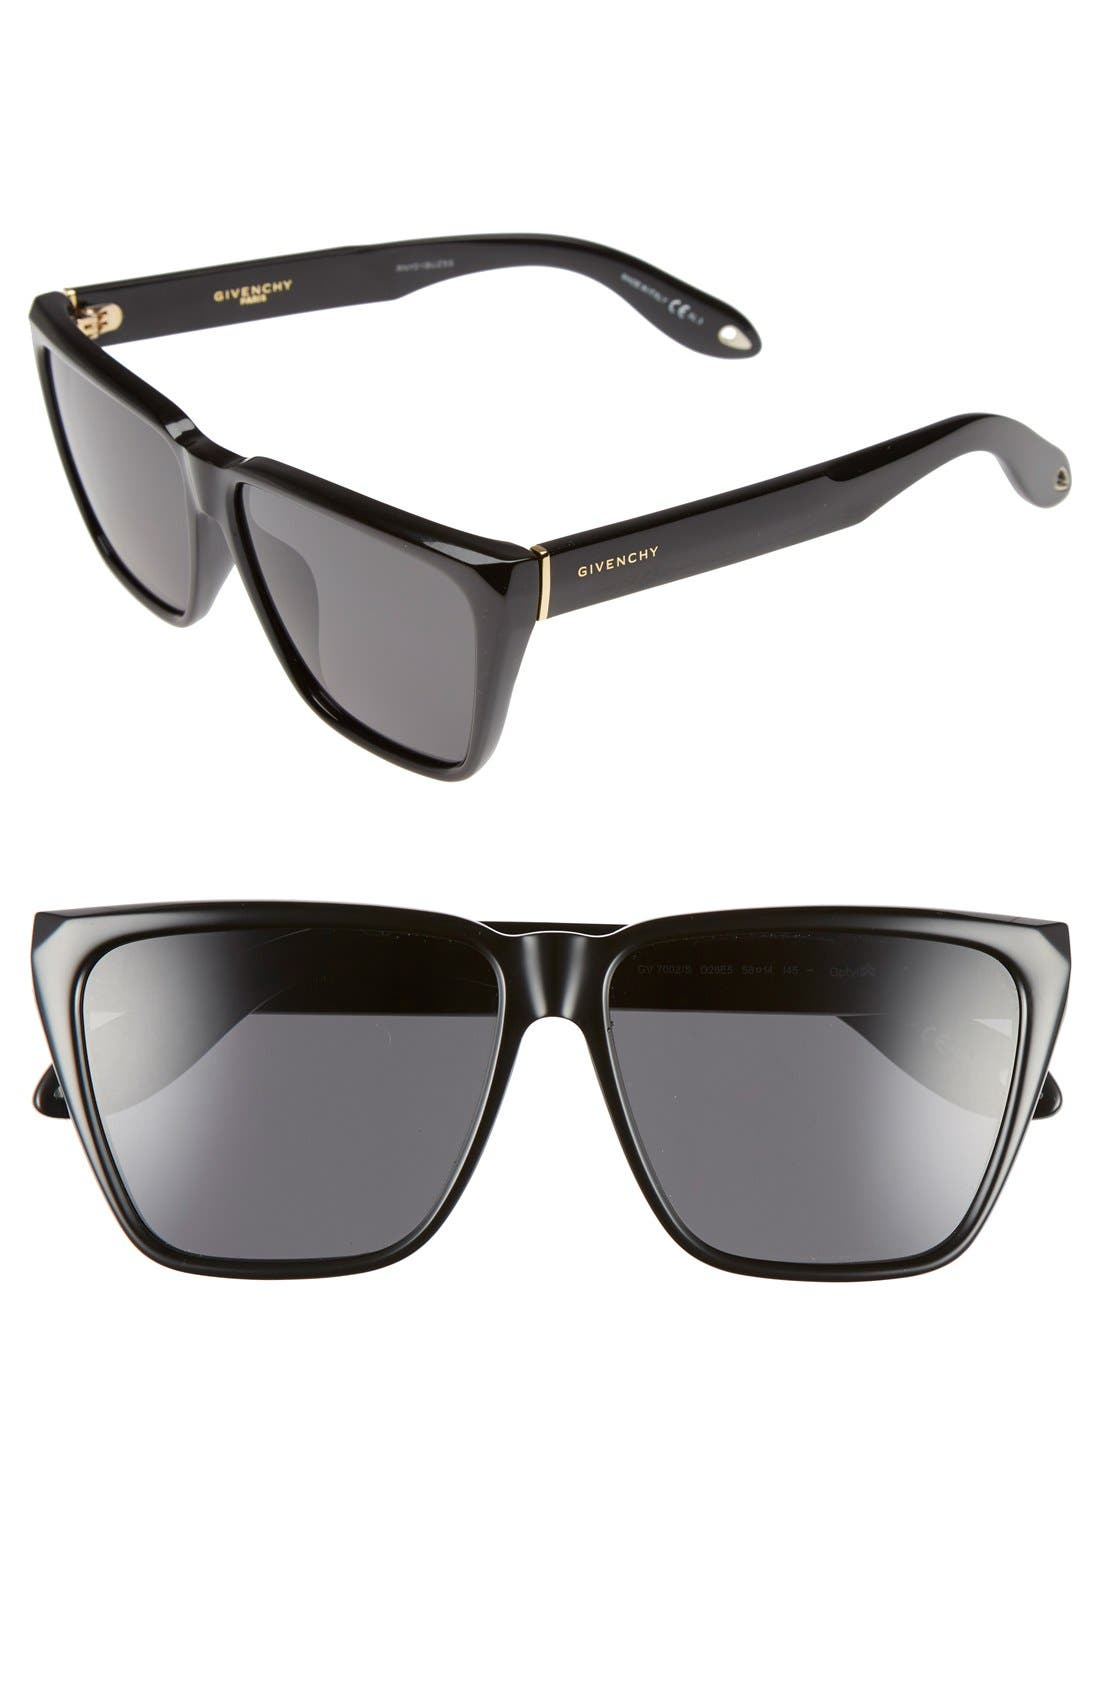 00a44c633dd2 Givenchy Sunglasses for Women